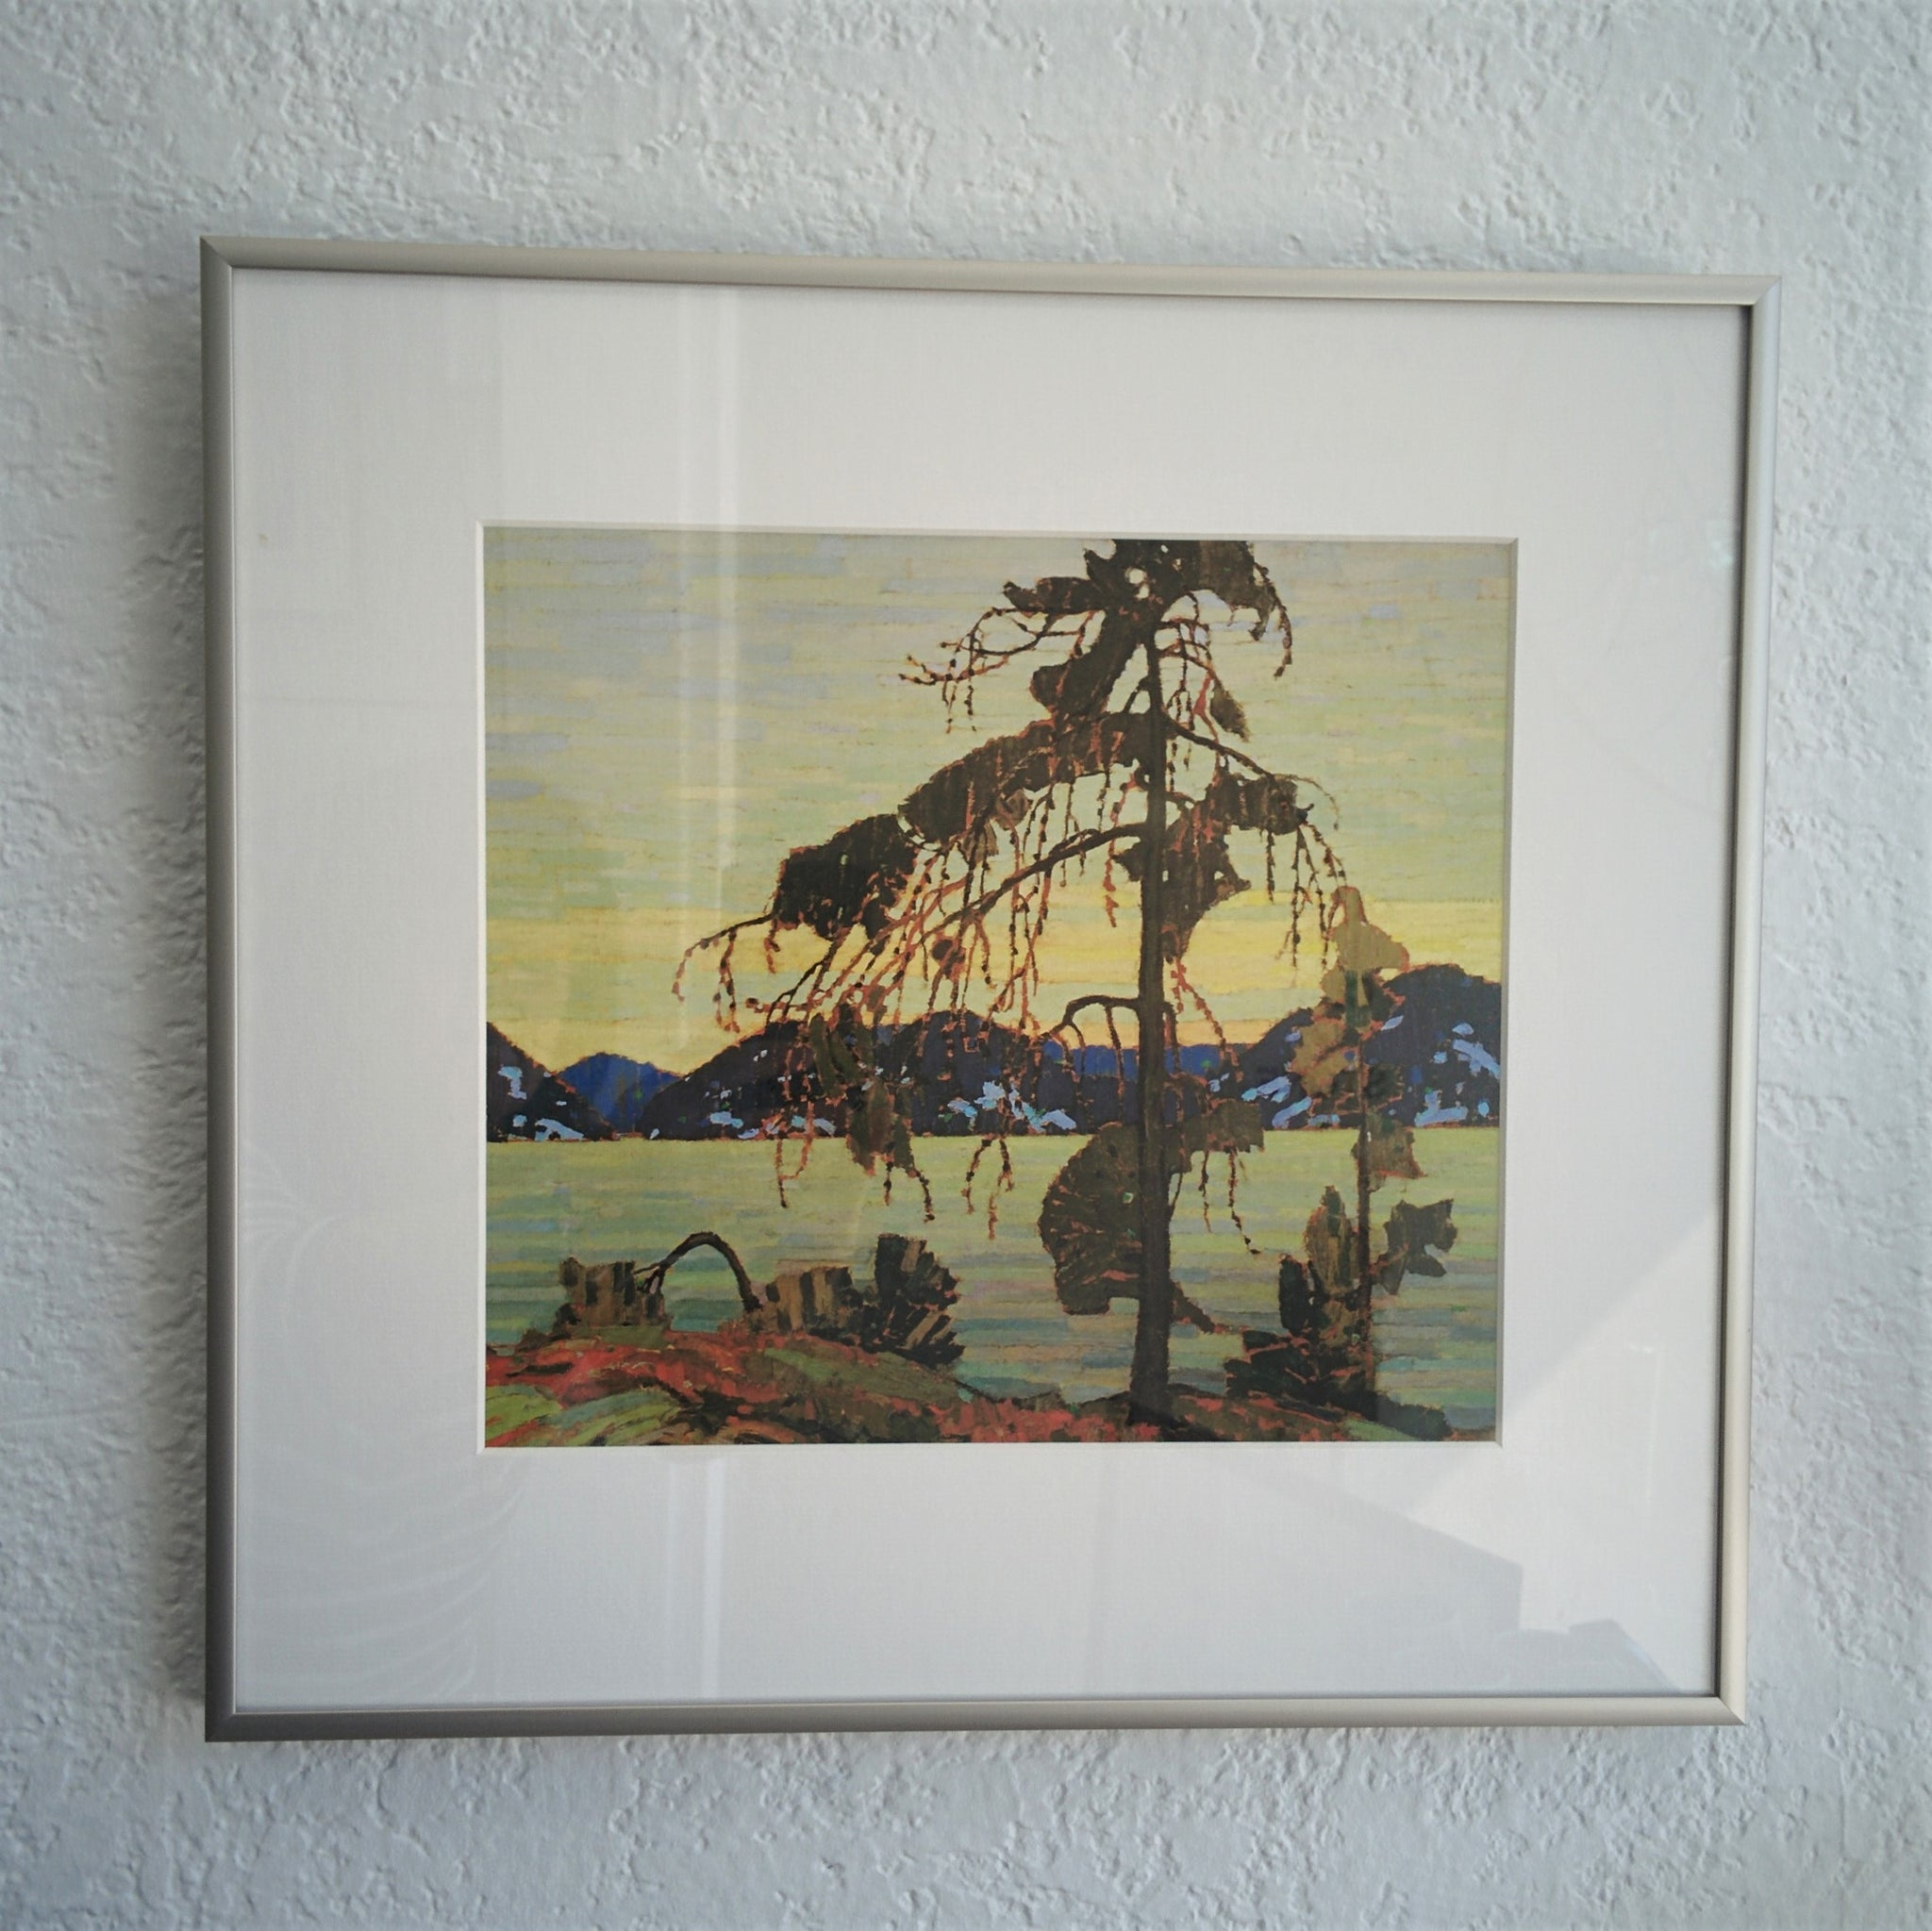 Group of Seve framed print, The Jack Pine by Tom Thomson, 1916